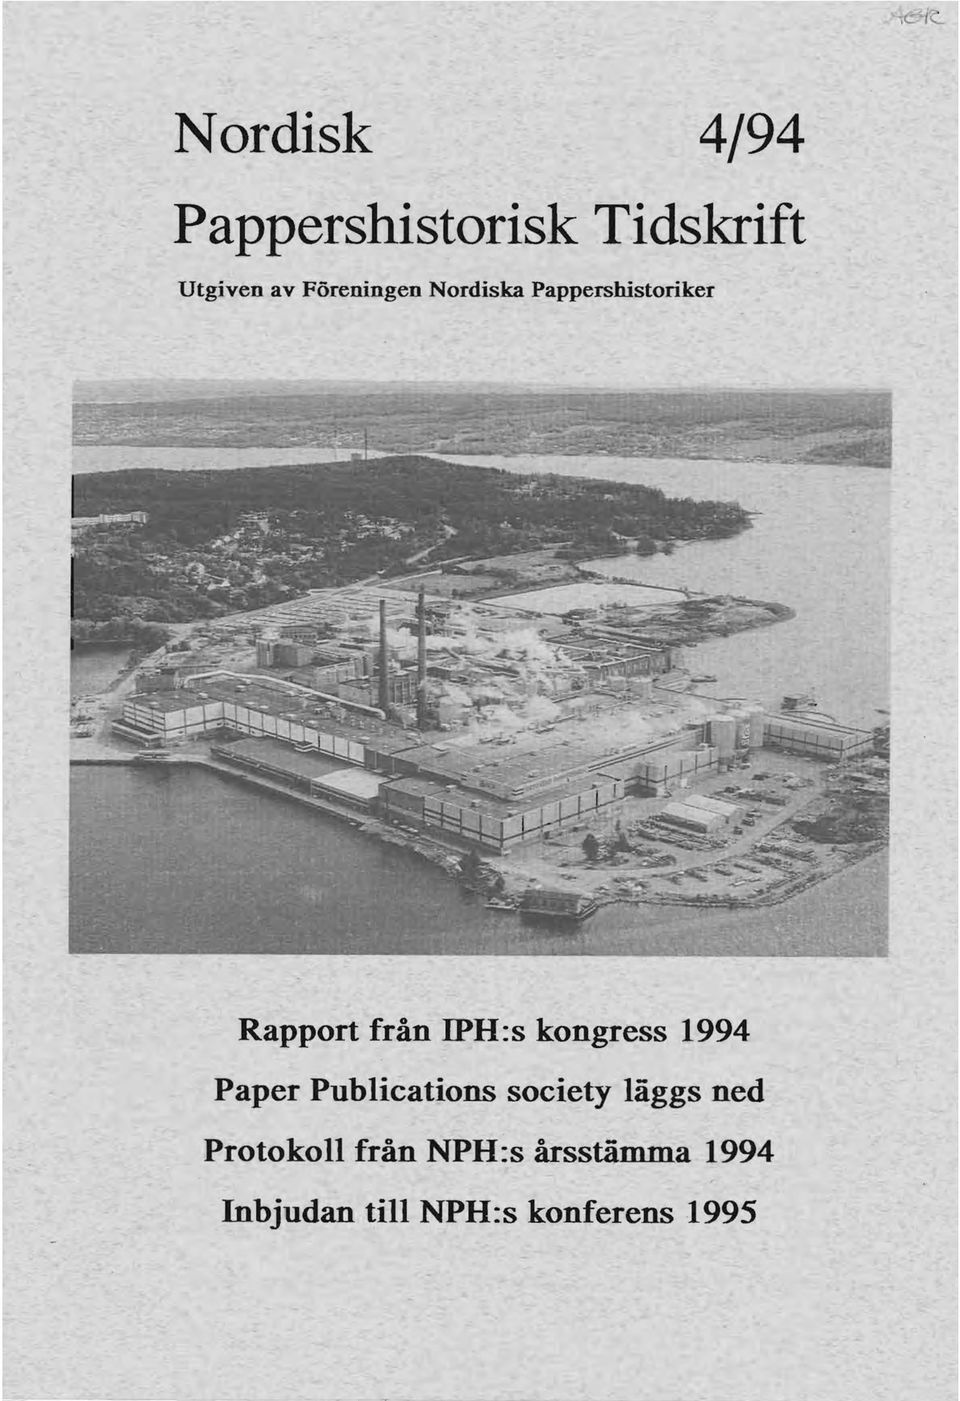 kongress 1994 Paper Publications society läggs ned